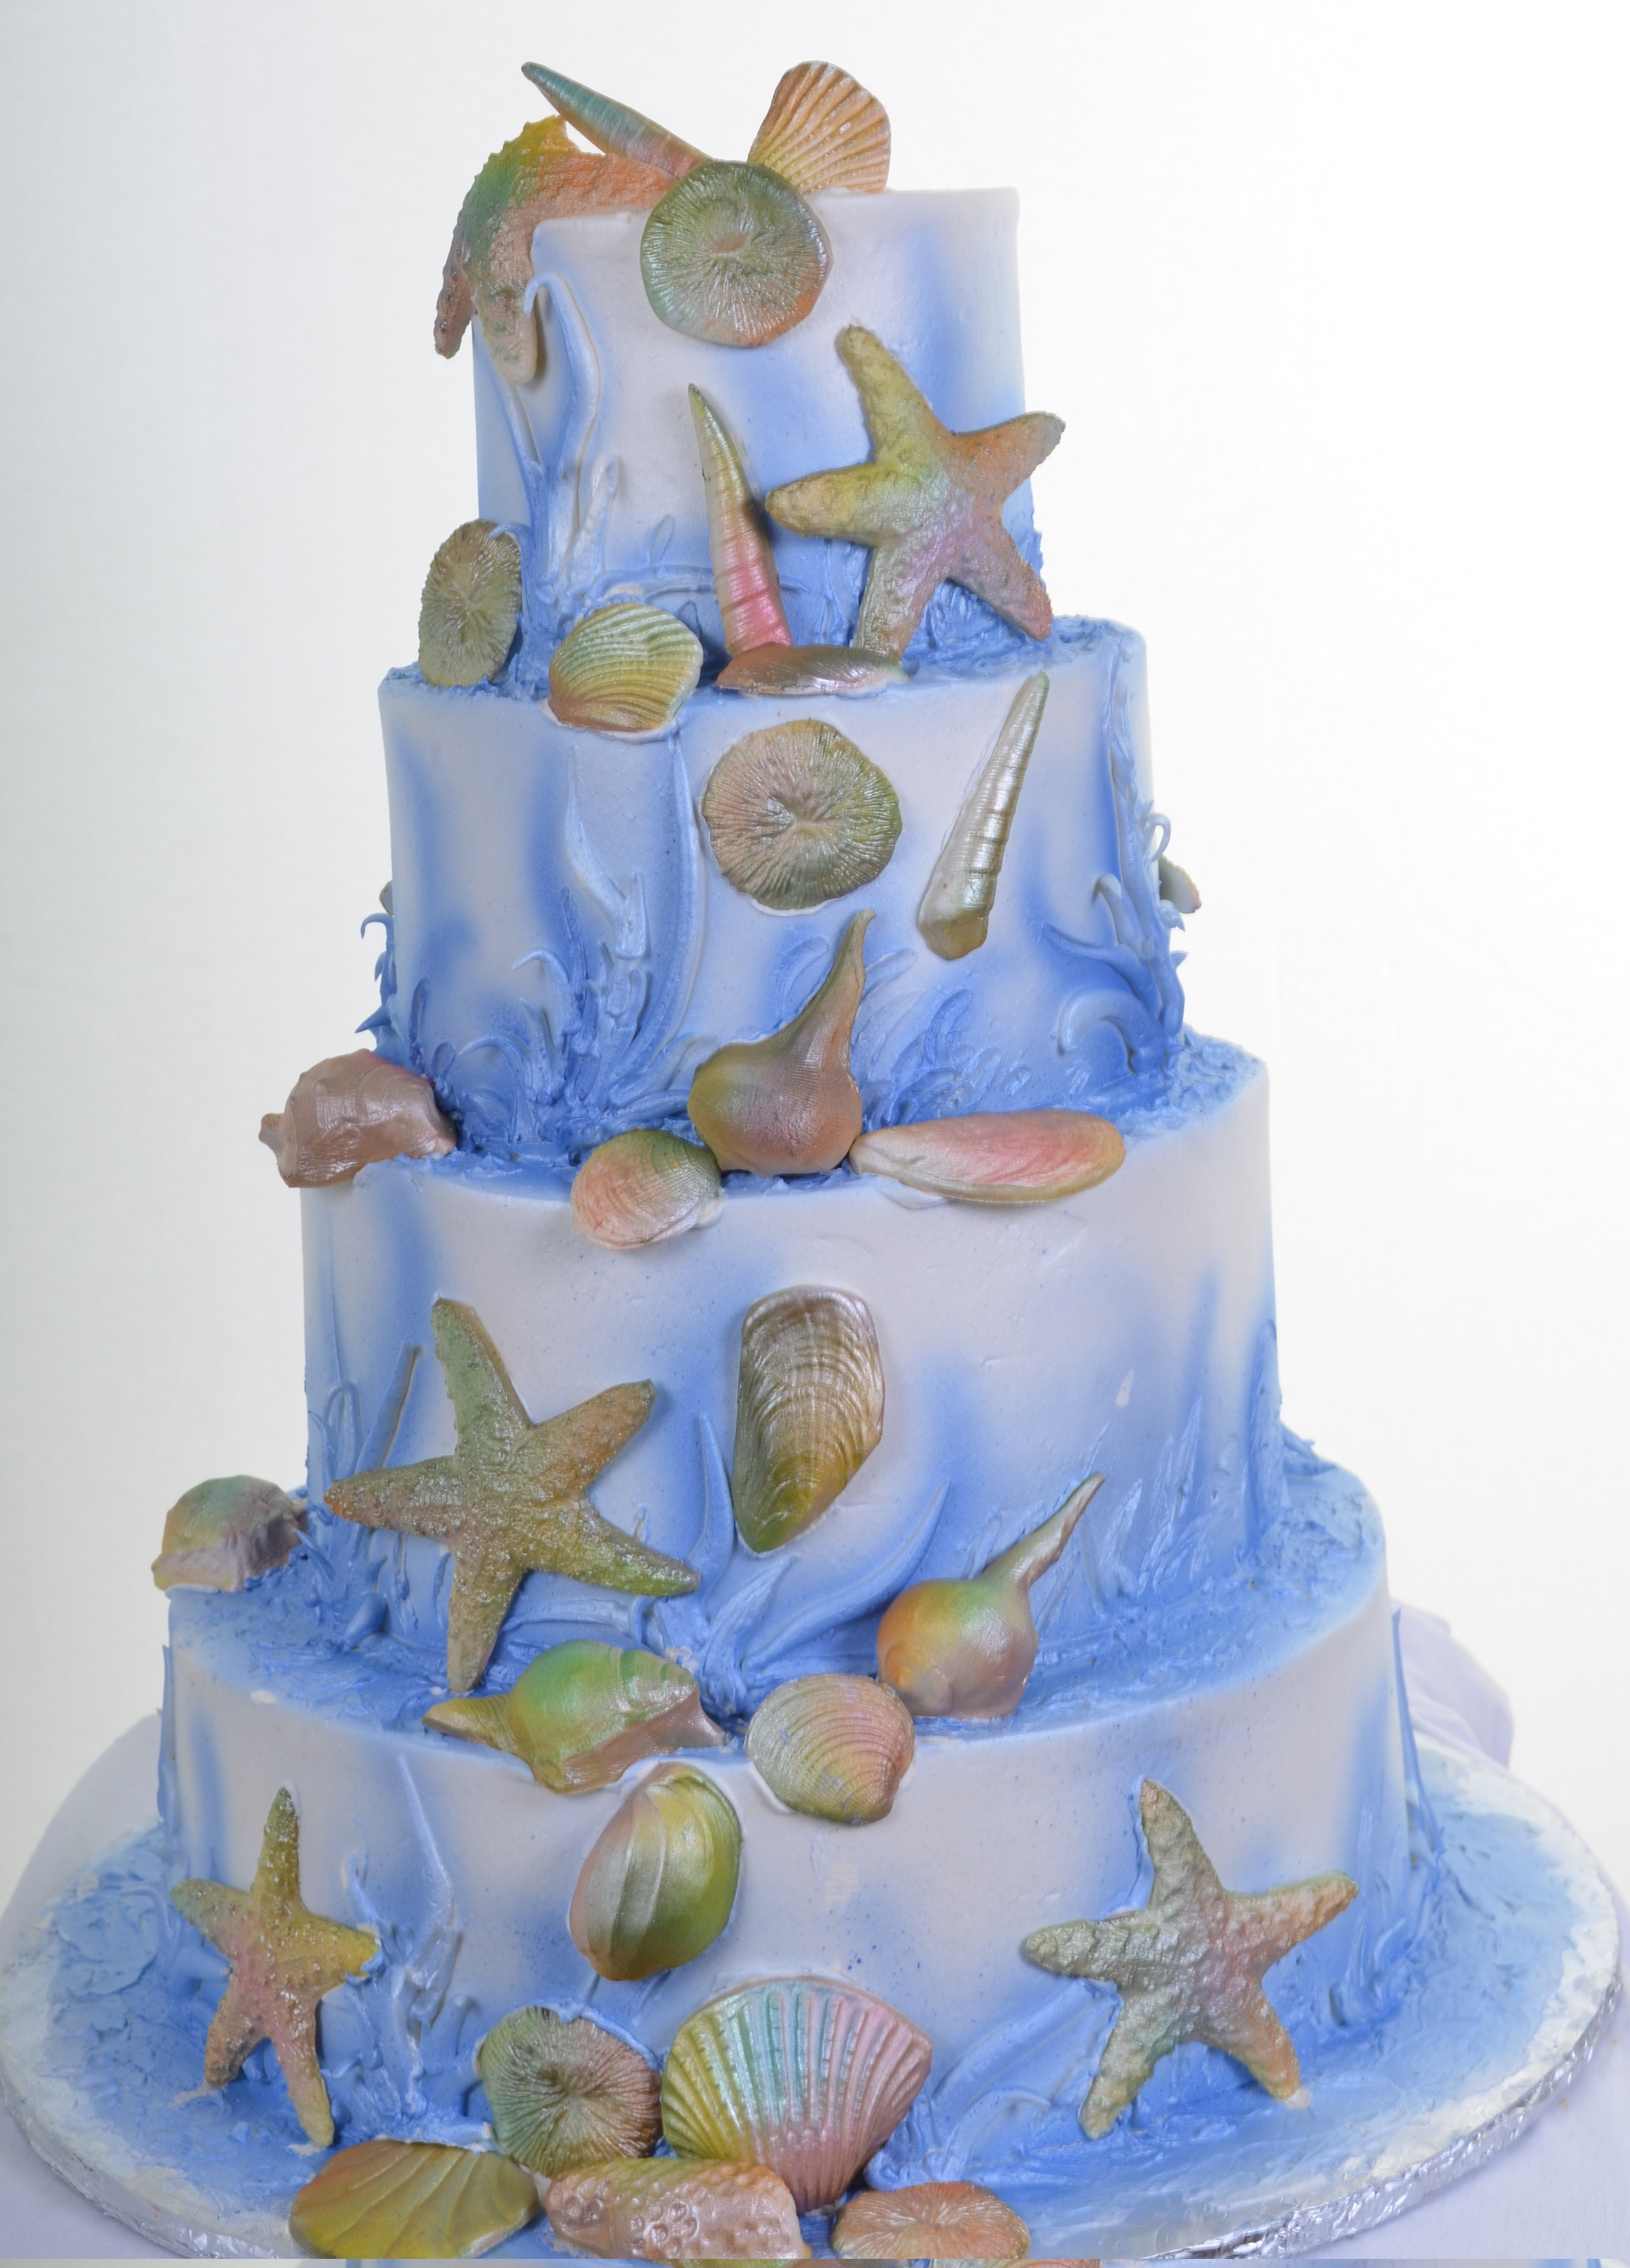 Pastry Palace Las Vegas - Wedding Cake 805 - From the Depths